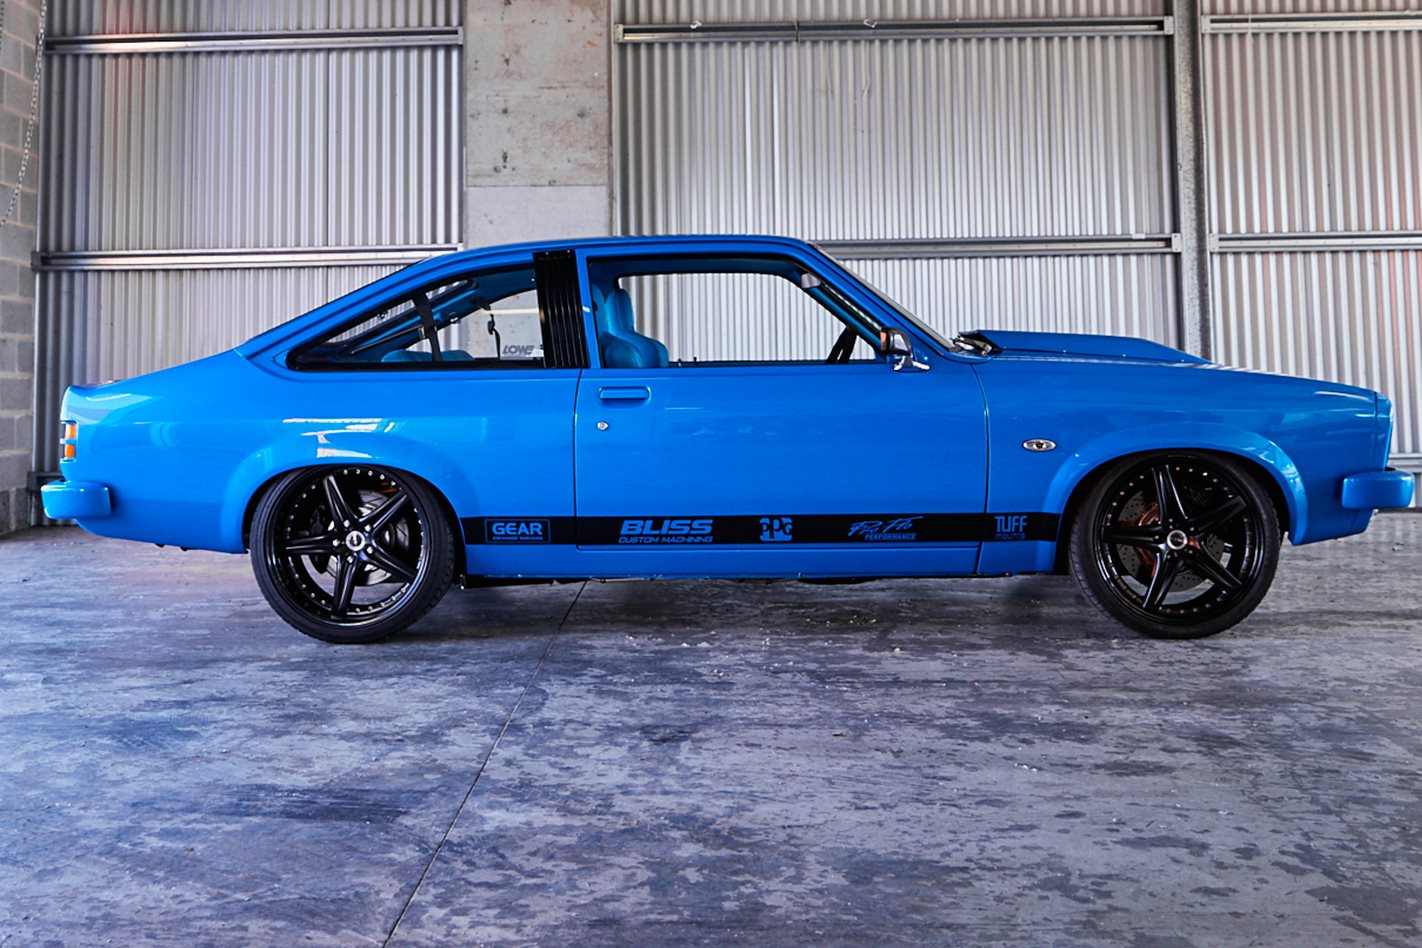 Spinks Torana side view